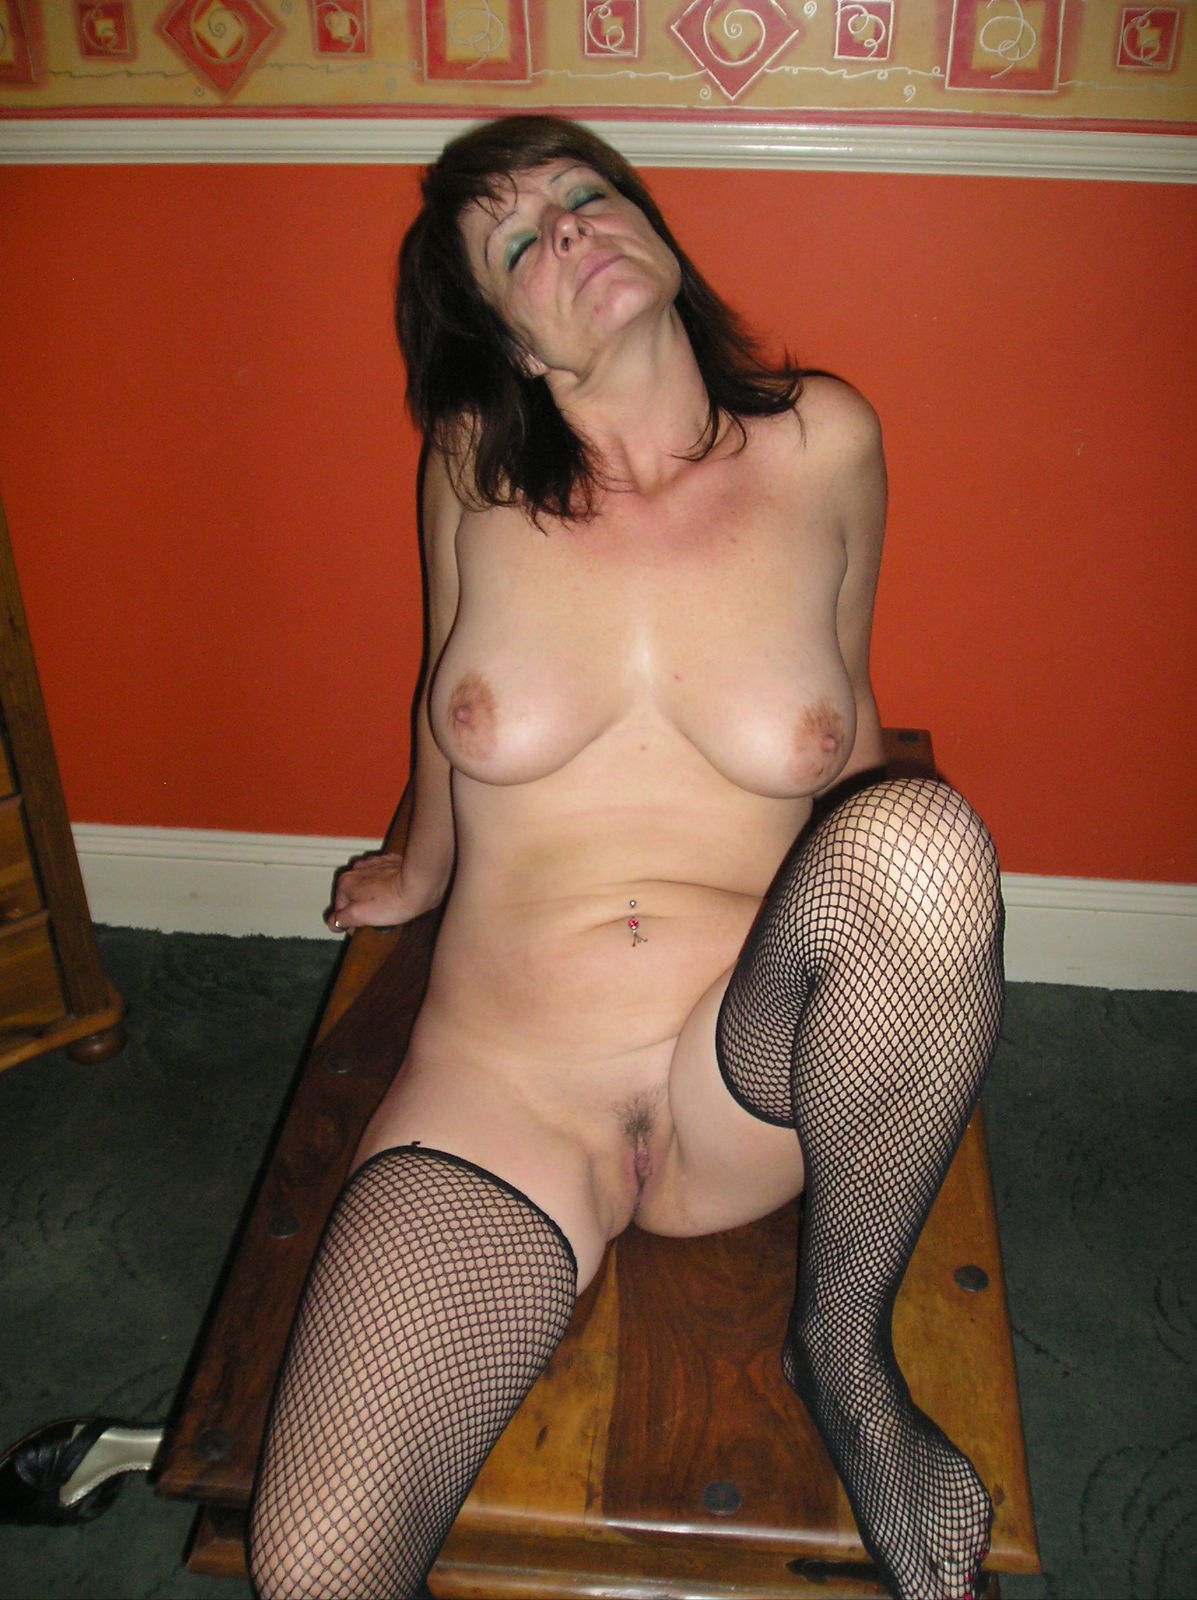 Milf slut with sexy body naked legs open. real nudity pussy flash mature howife